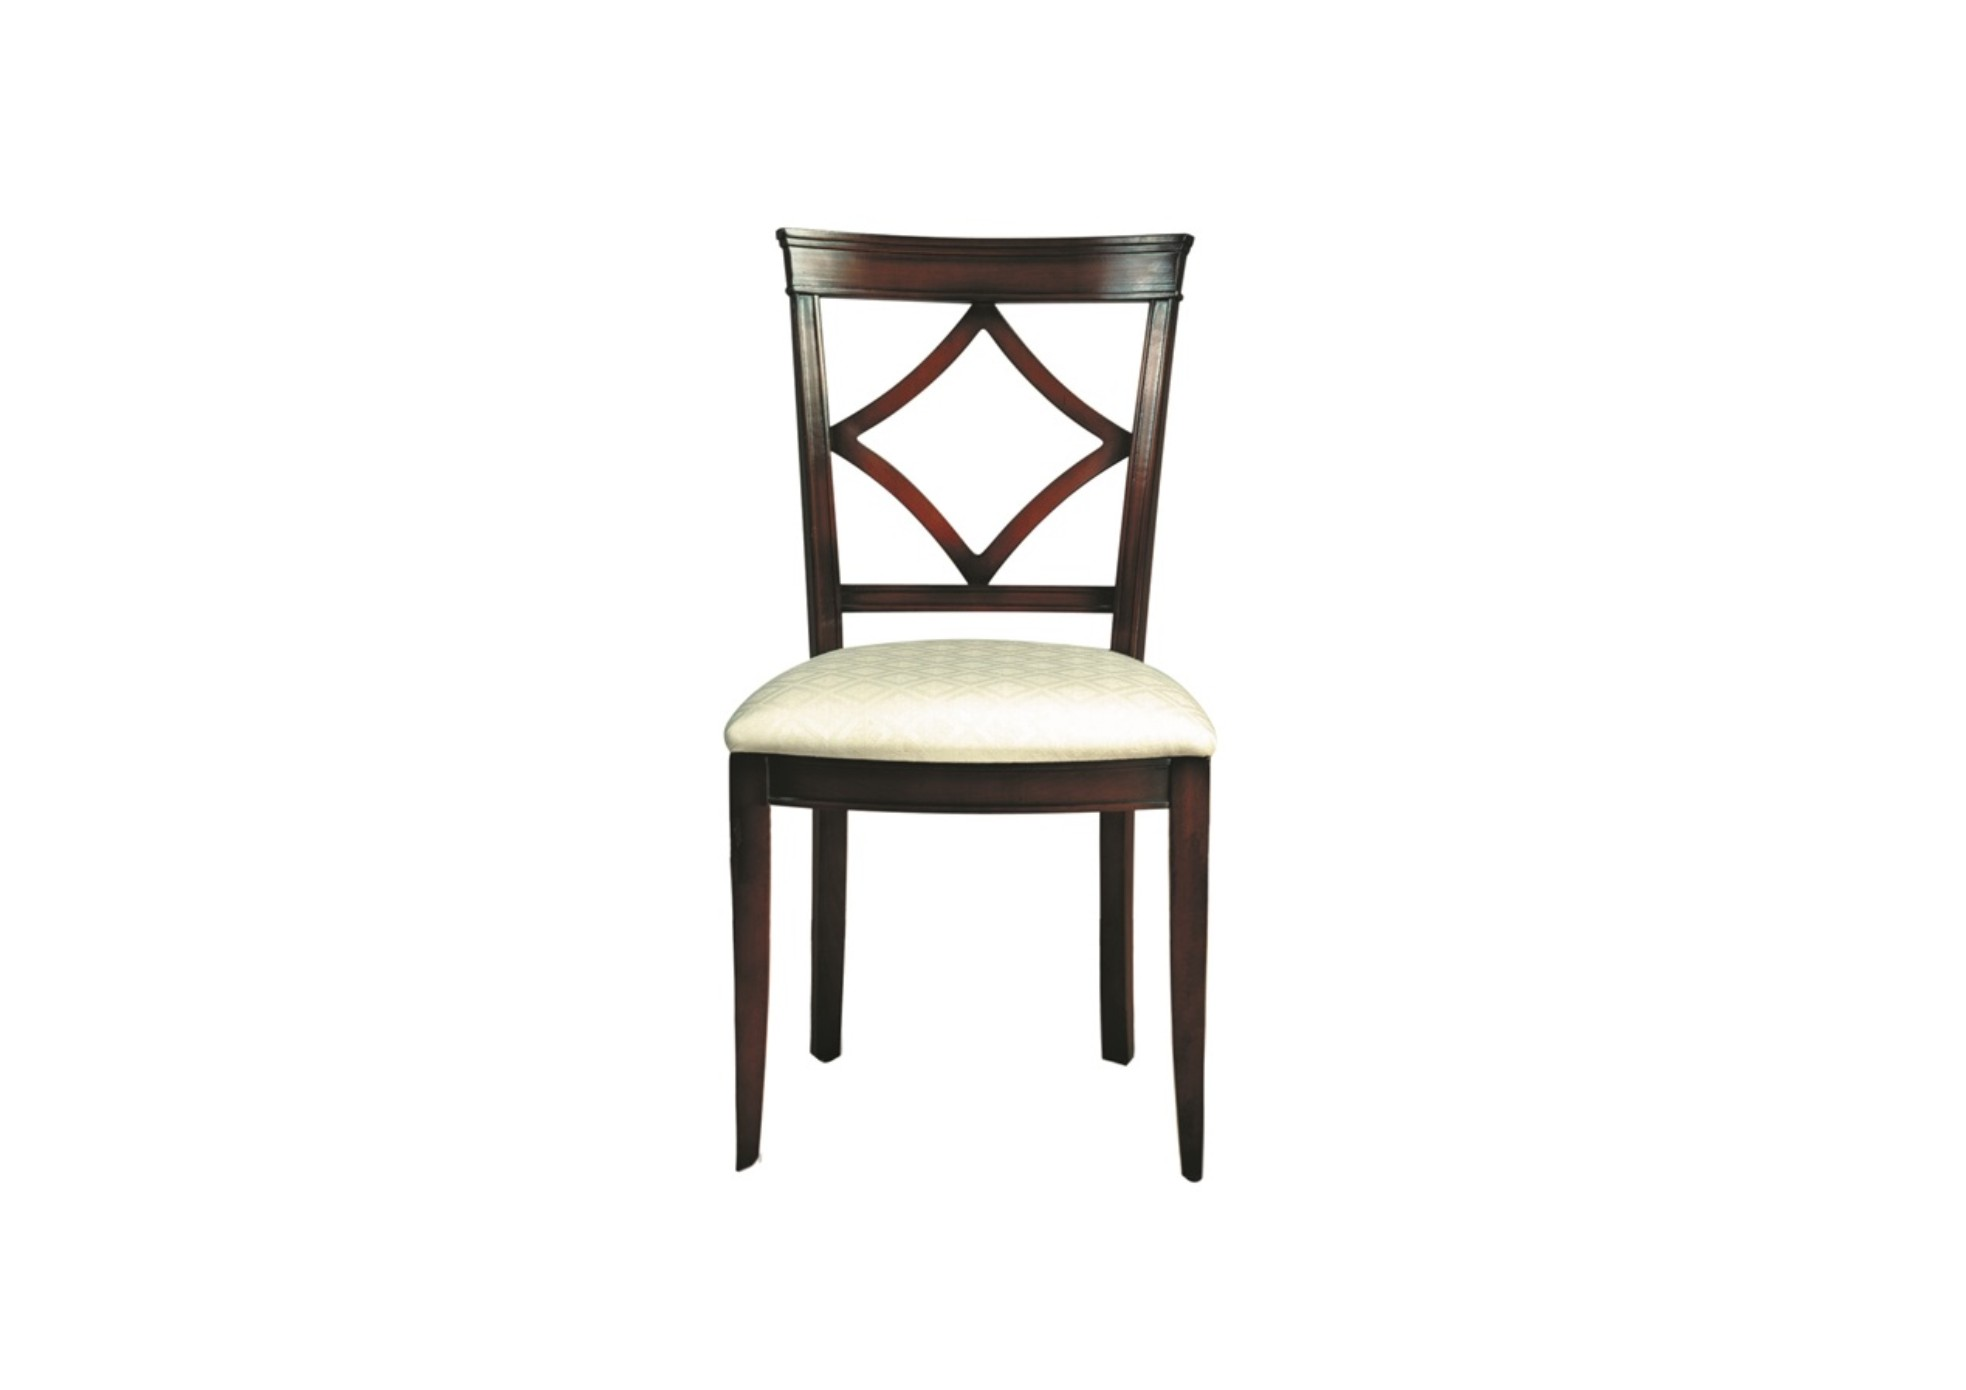 Bradley Diamond Dining Chairs